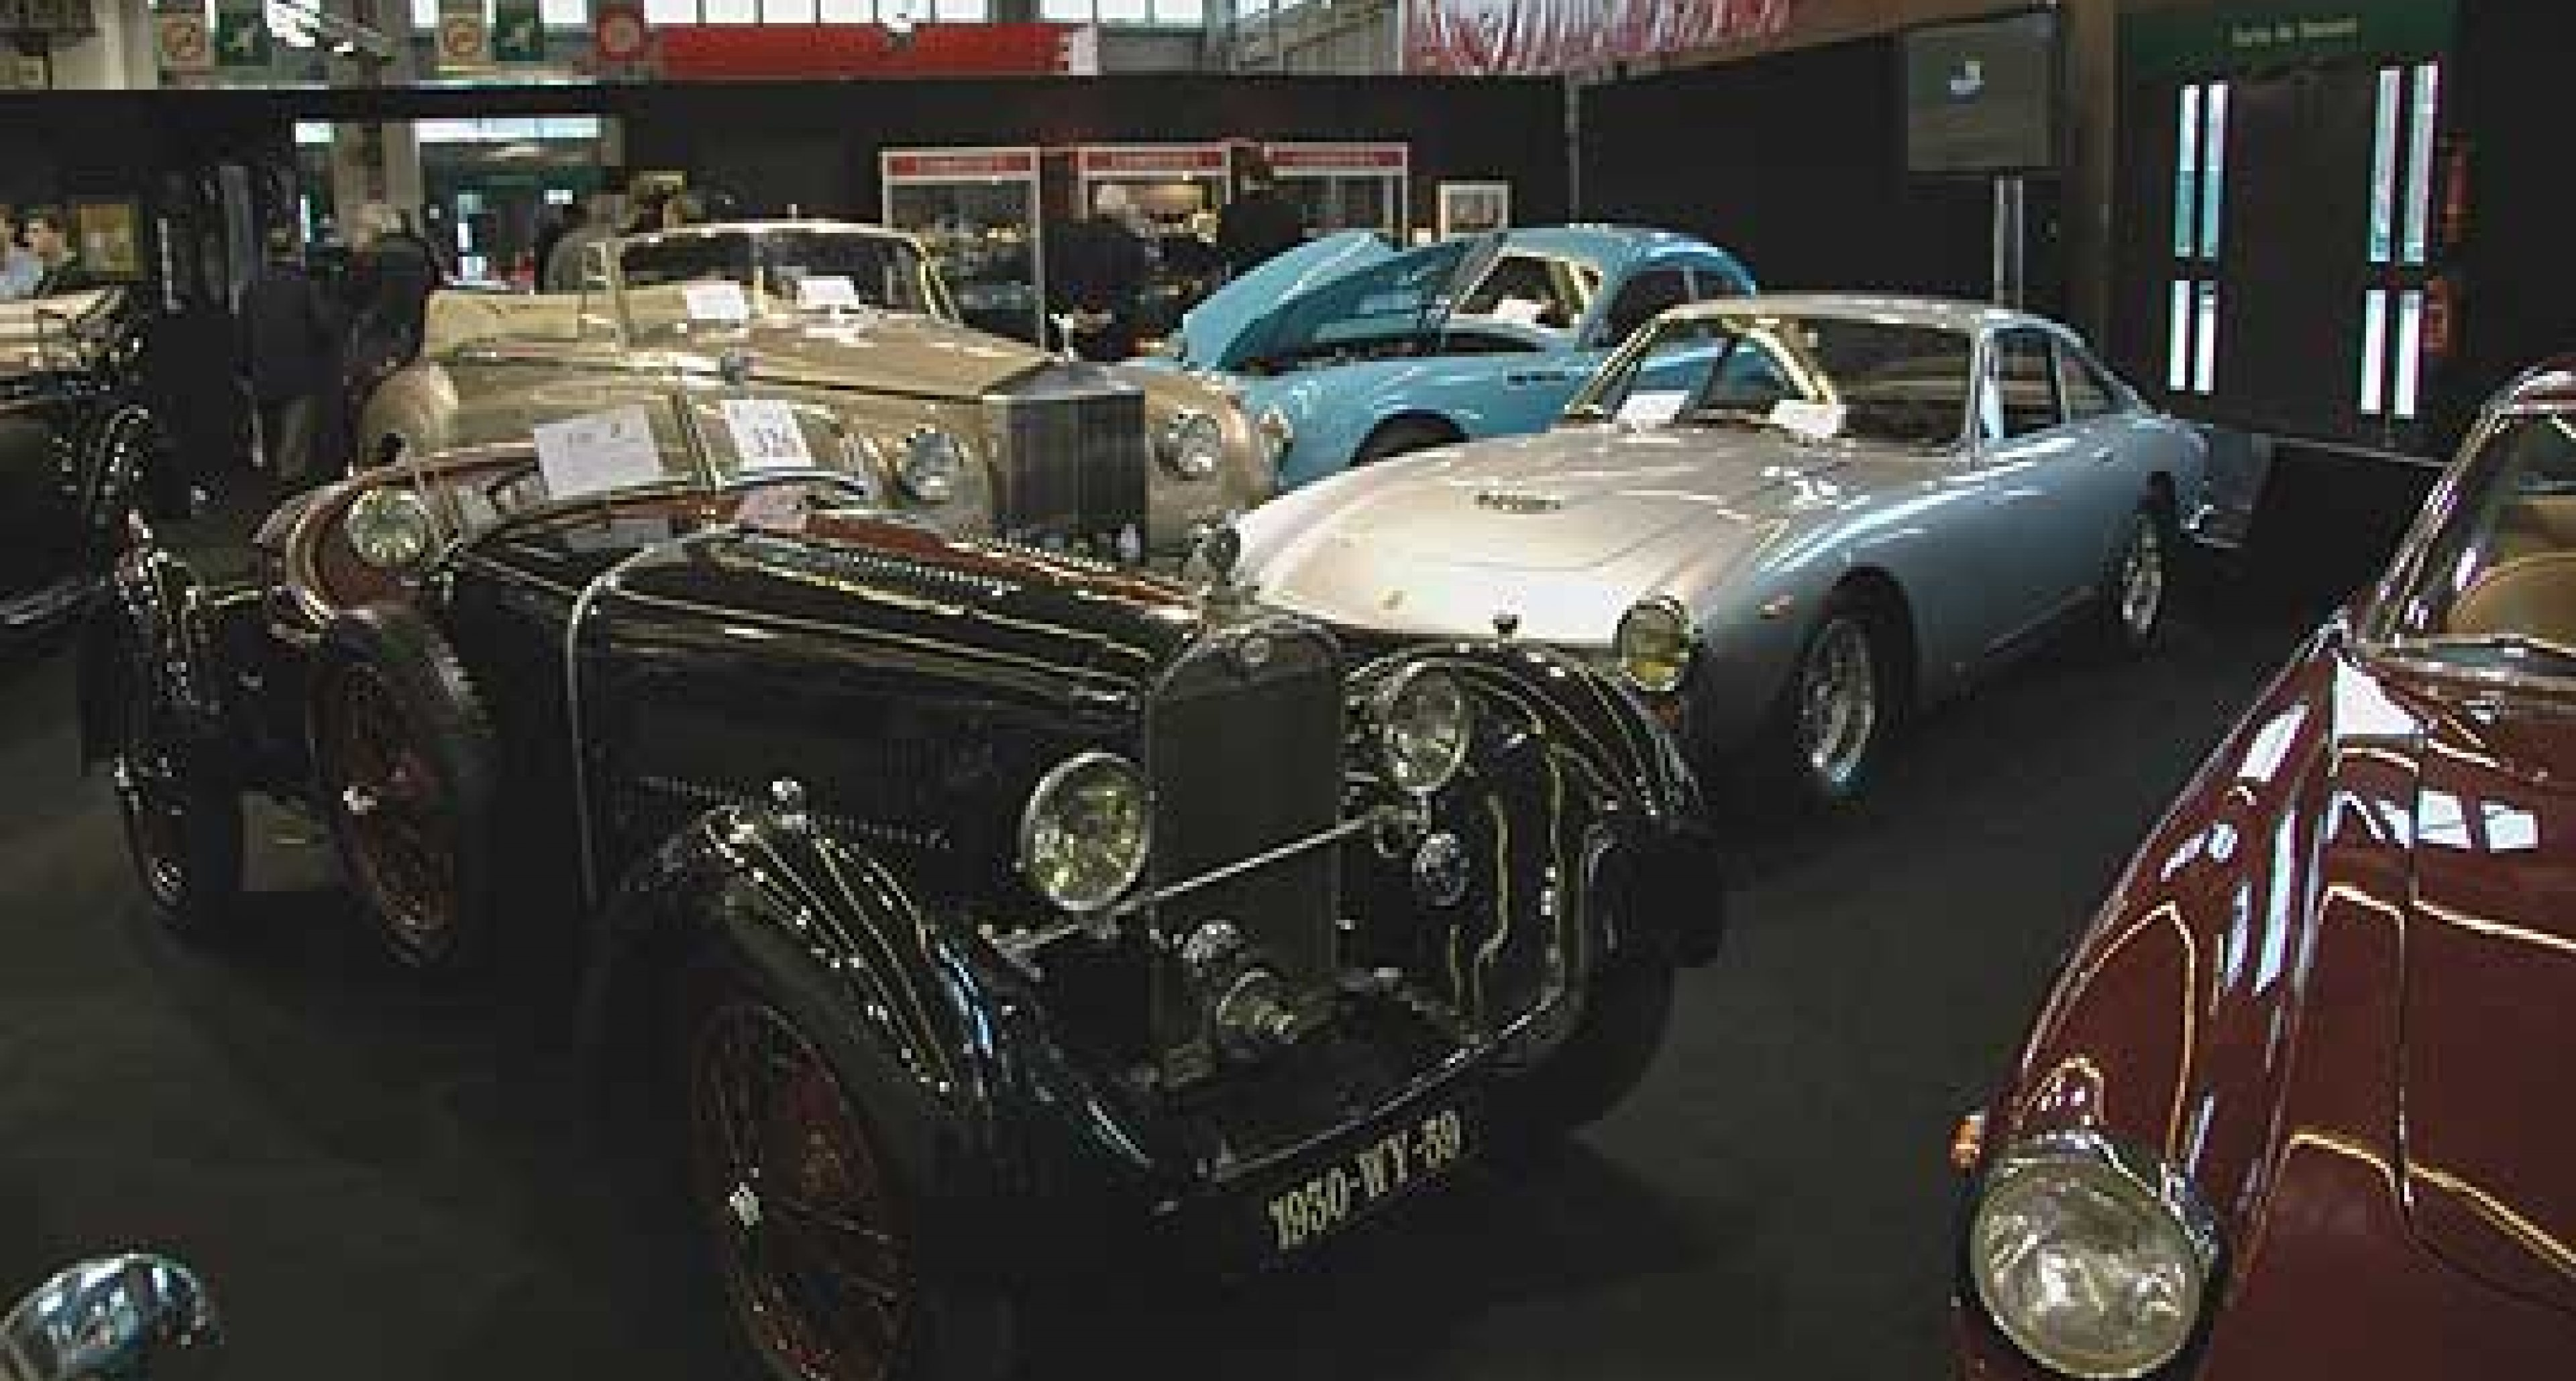 16 - 17 February 2007 Christie's at Rétromobile - Review